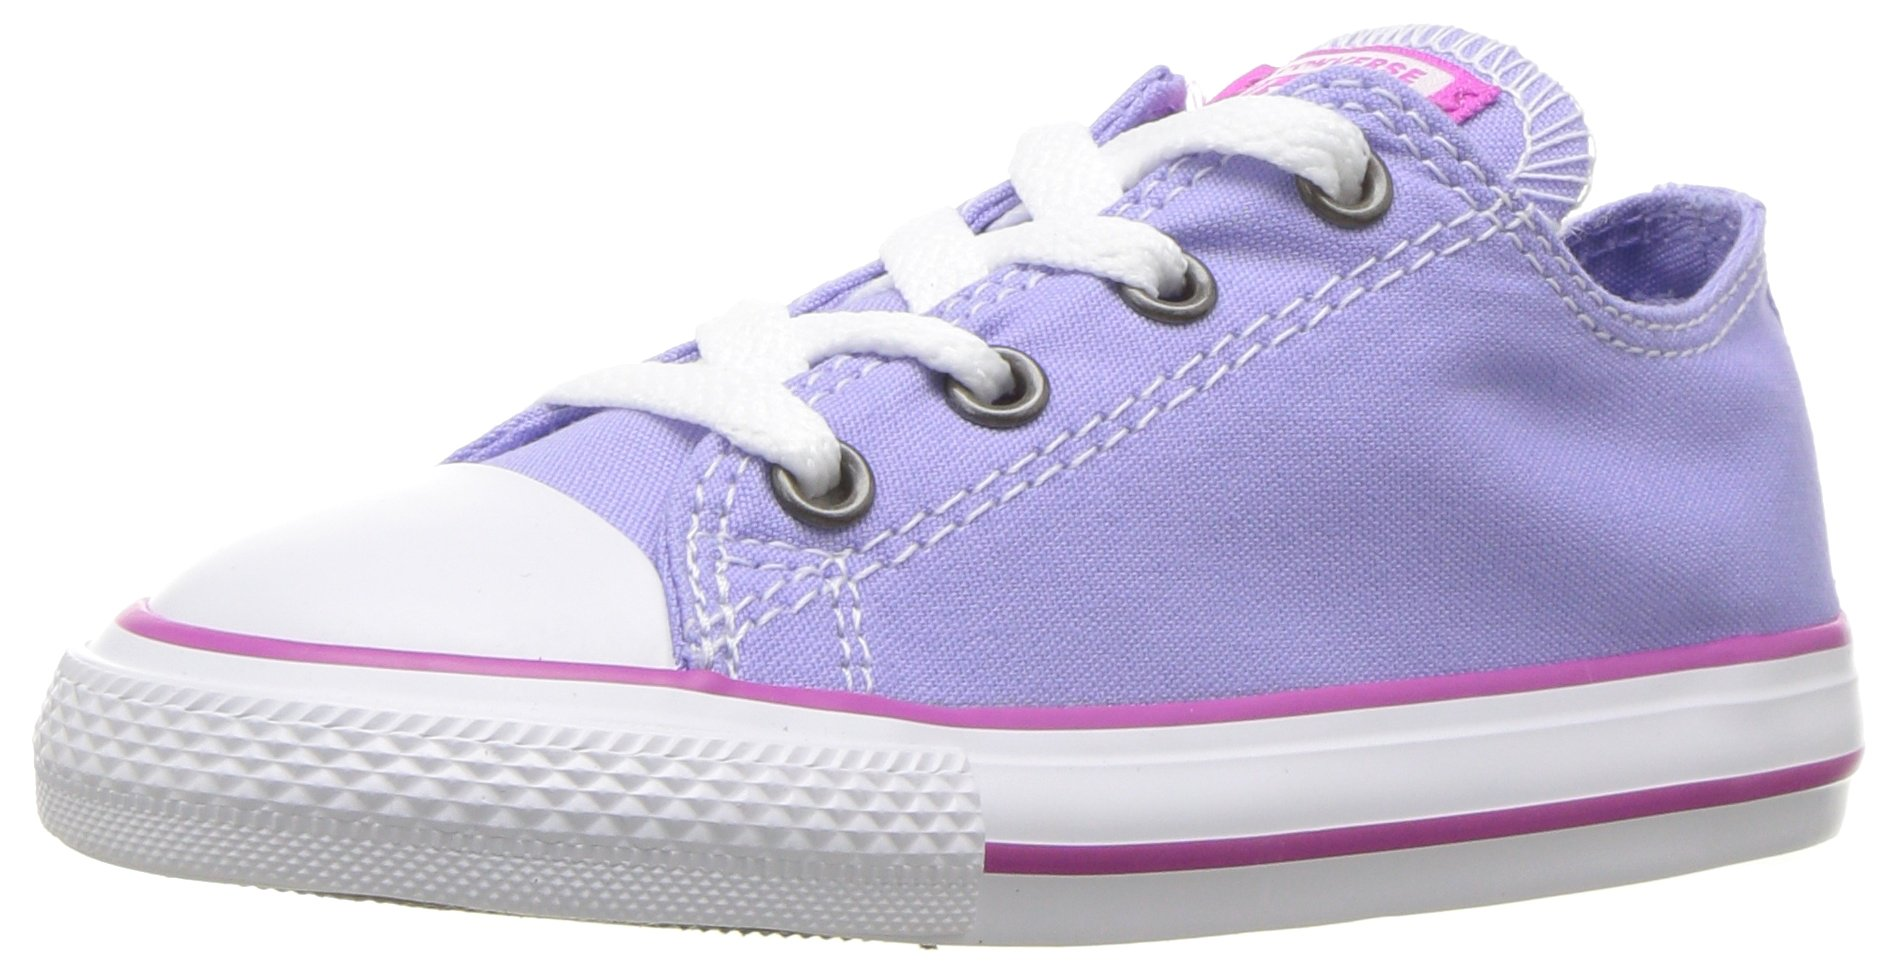 Converse Kids' Chuck Taylor All Star Seasonal Canvas Low Top Sneaker, Twilight Pulse/Hyper Magenta, 5 M US Toddler by Converse